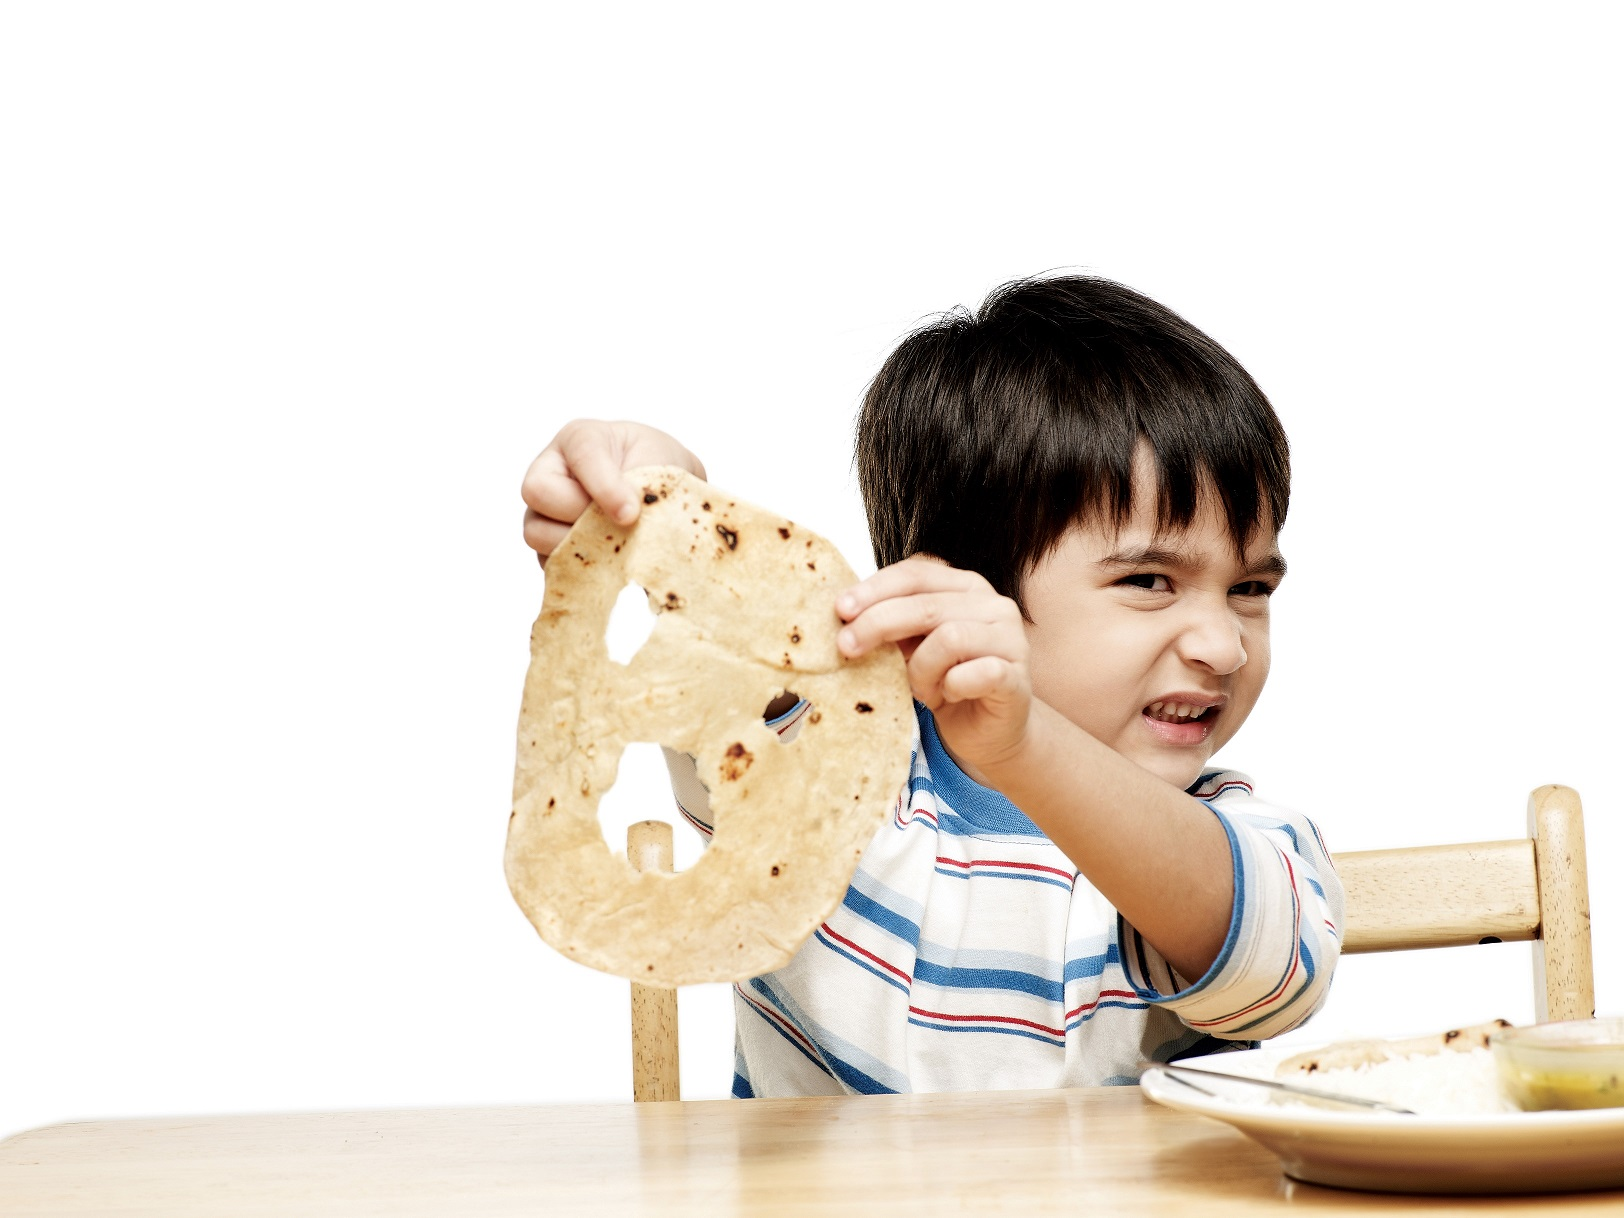 What and How much should be fed to toddlers?